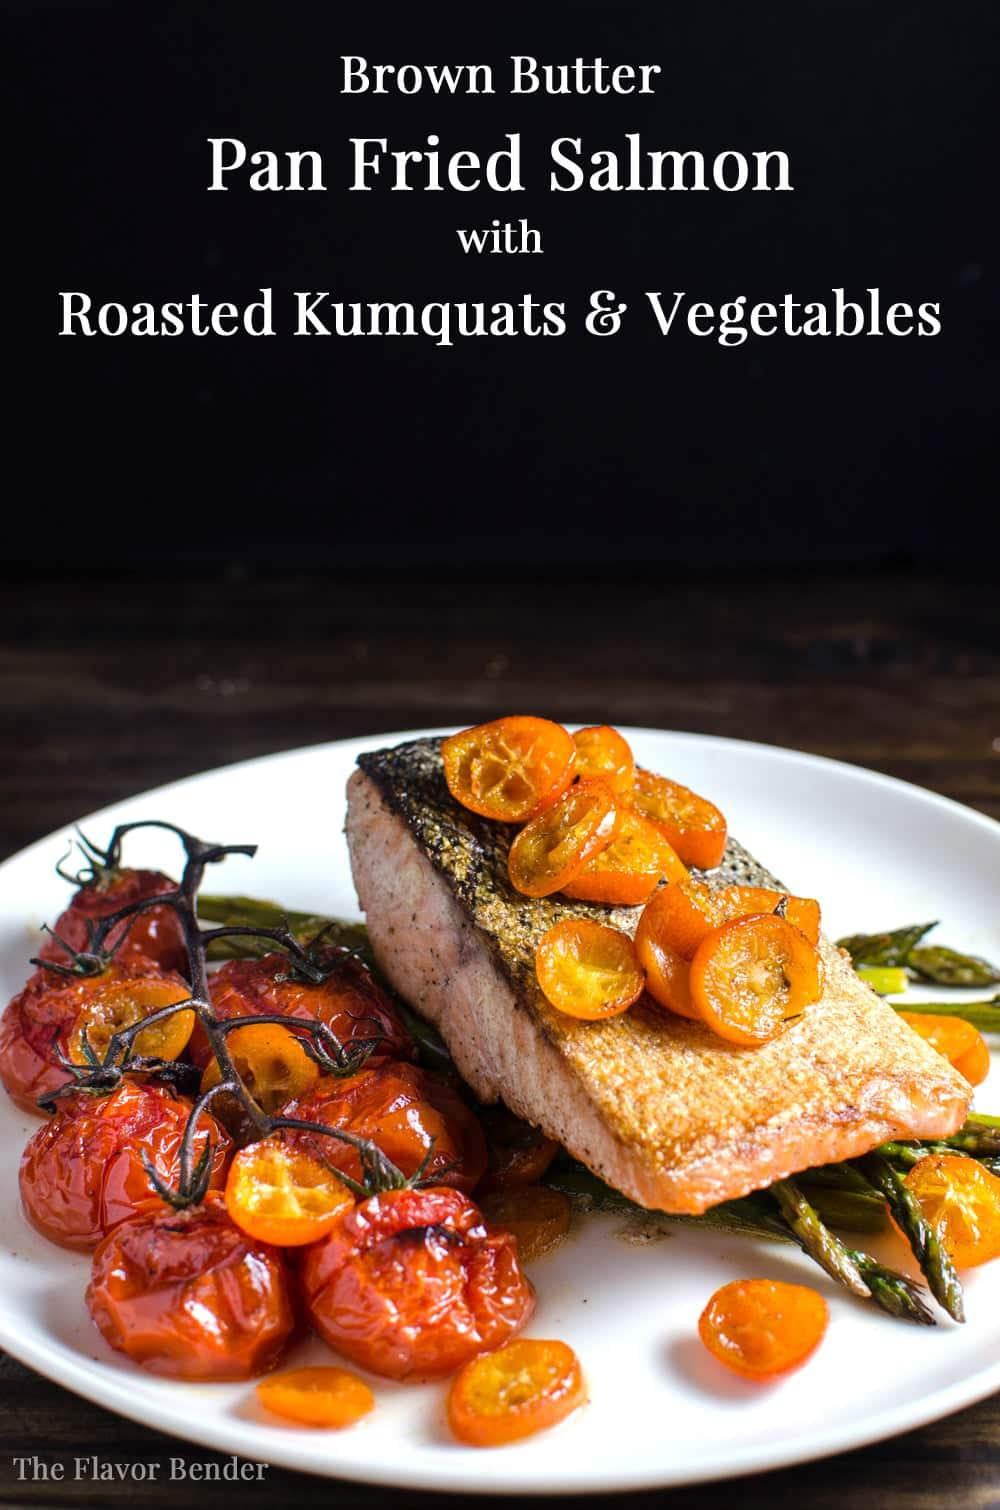 Pan Seared Salmon with Roasted Vegetables